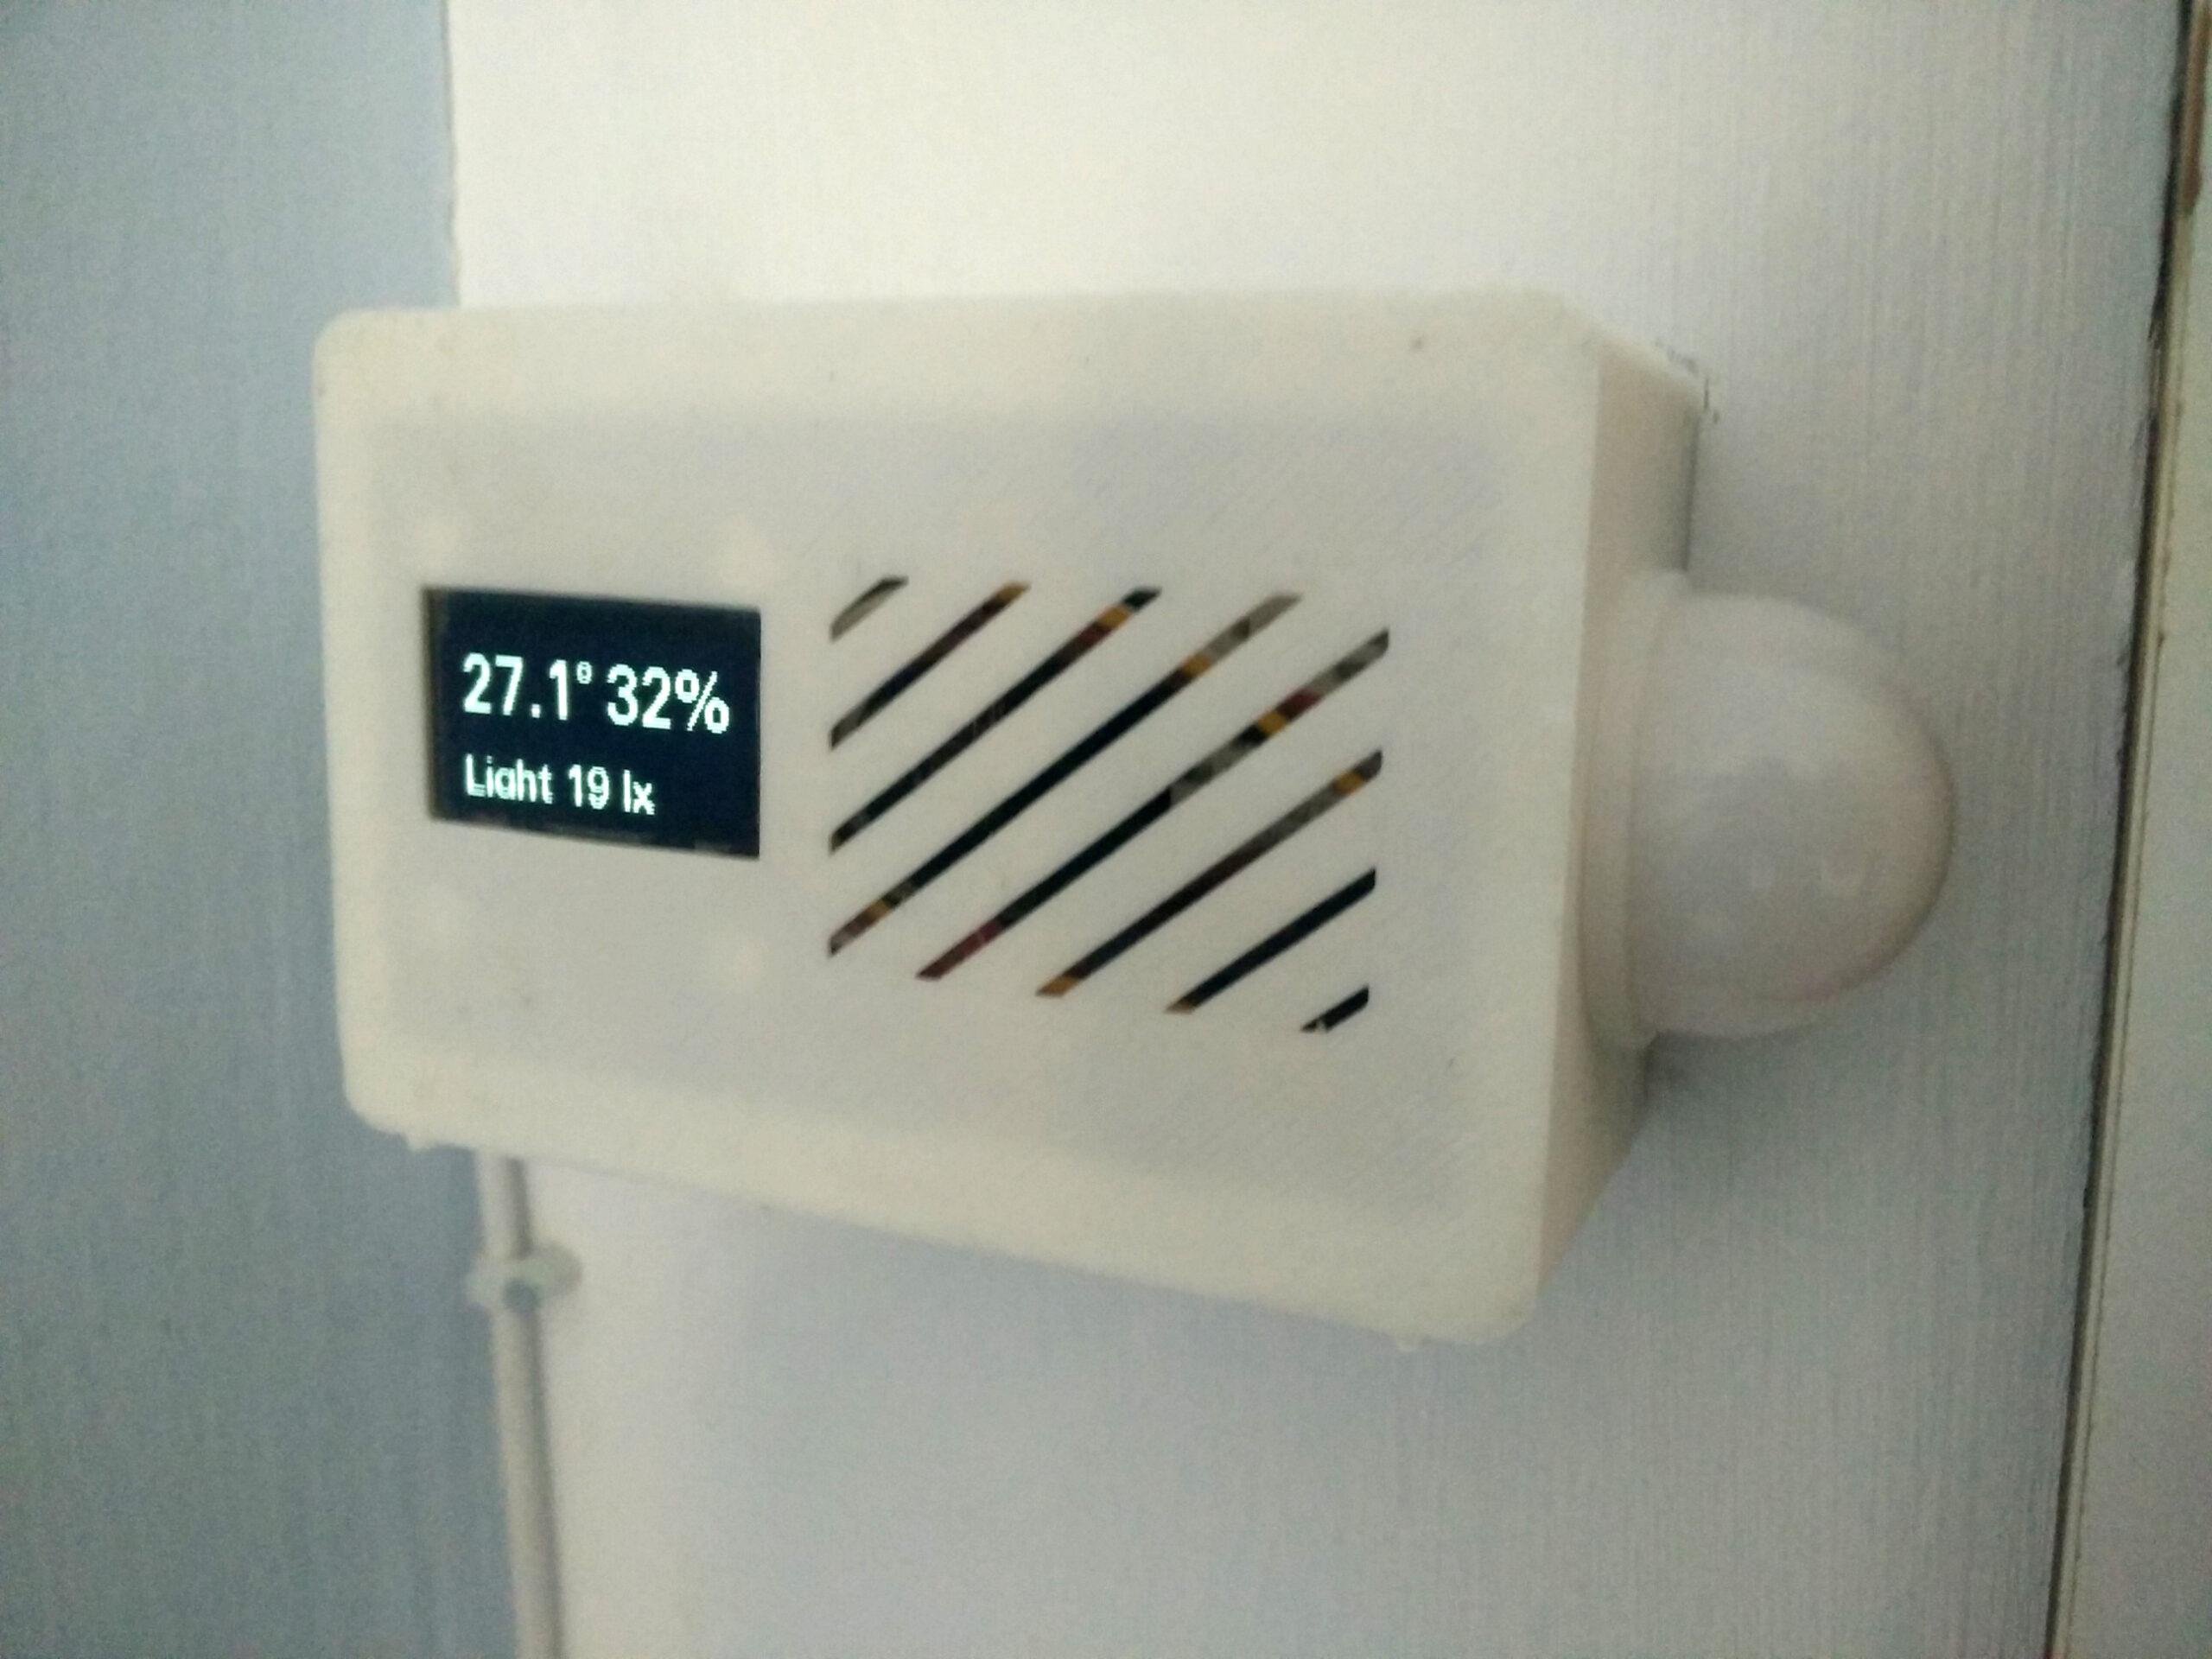 Open Bedroom Thermometer